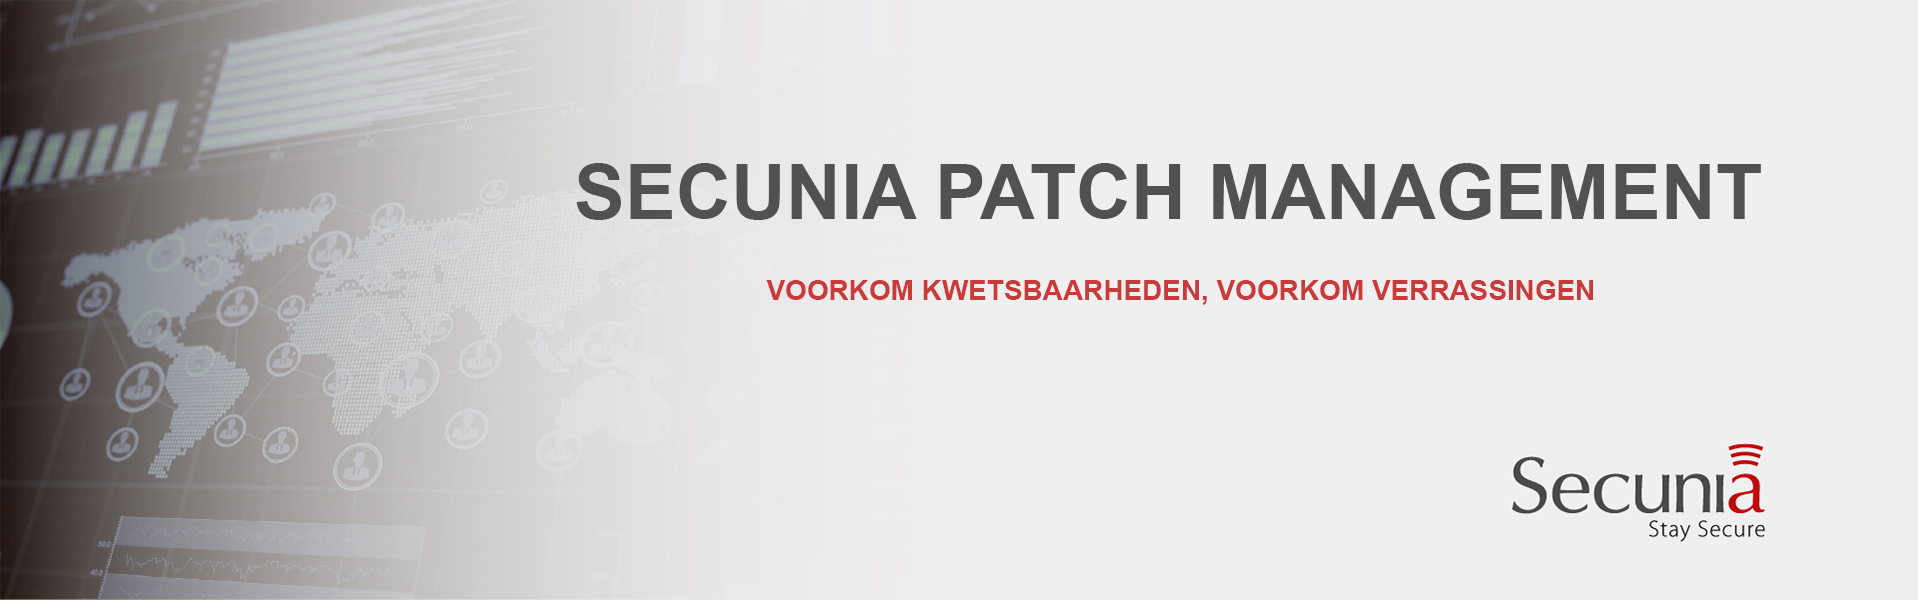 banner Secunia Patch Management